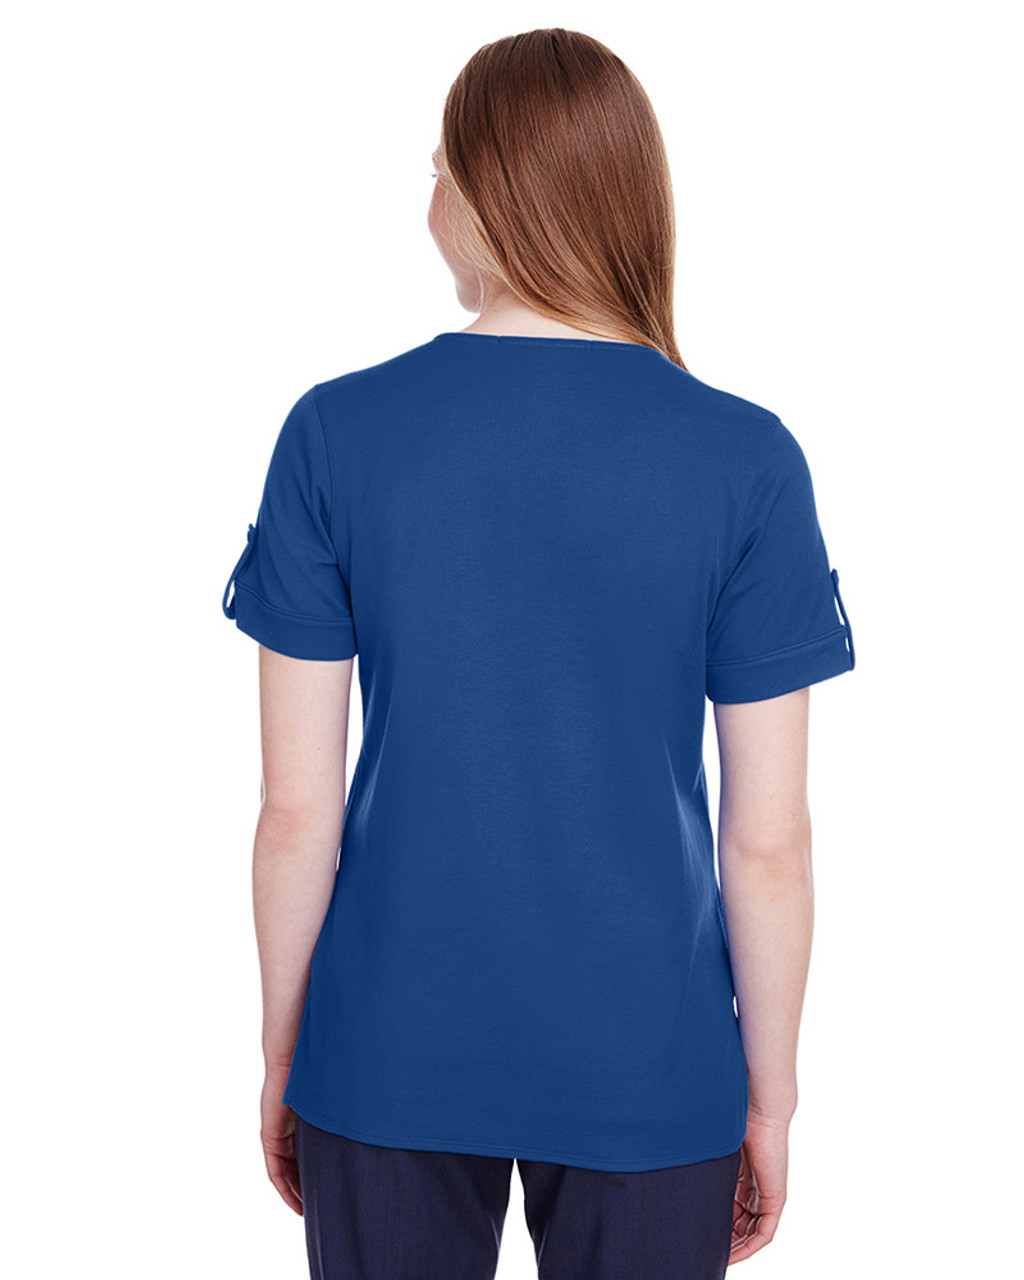 True Royal - back, DG20WB Devon & Jones Ladies' CrownLux Performance™ Plaited Rolled-Sleeve Top | Blankclothing.ca